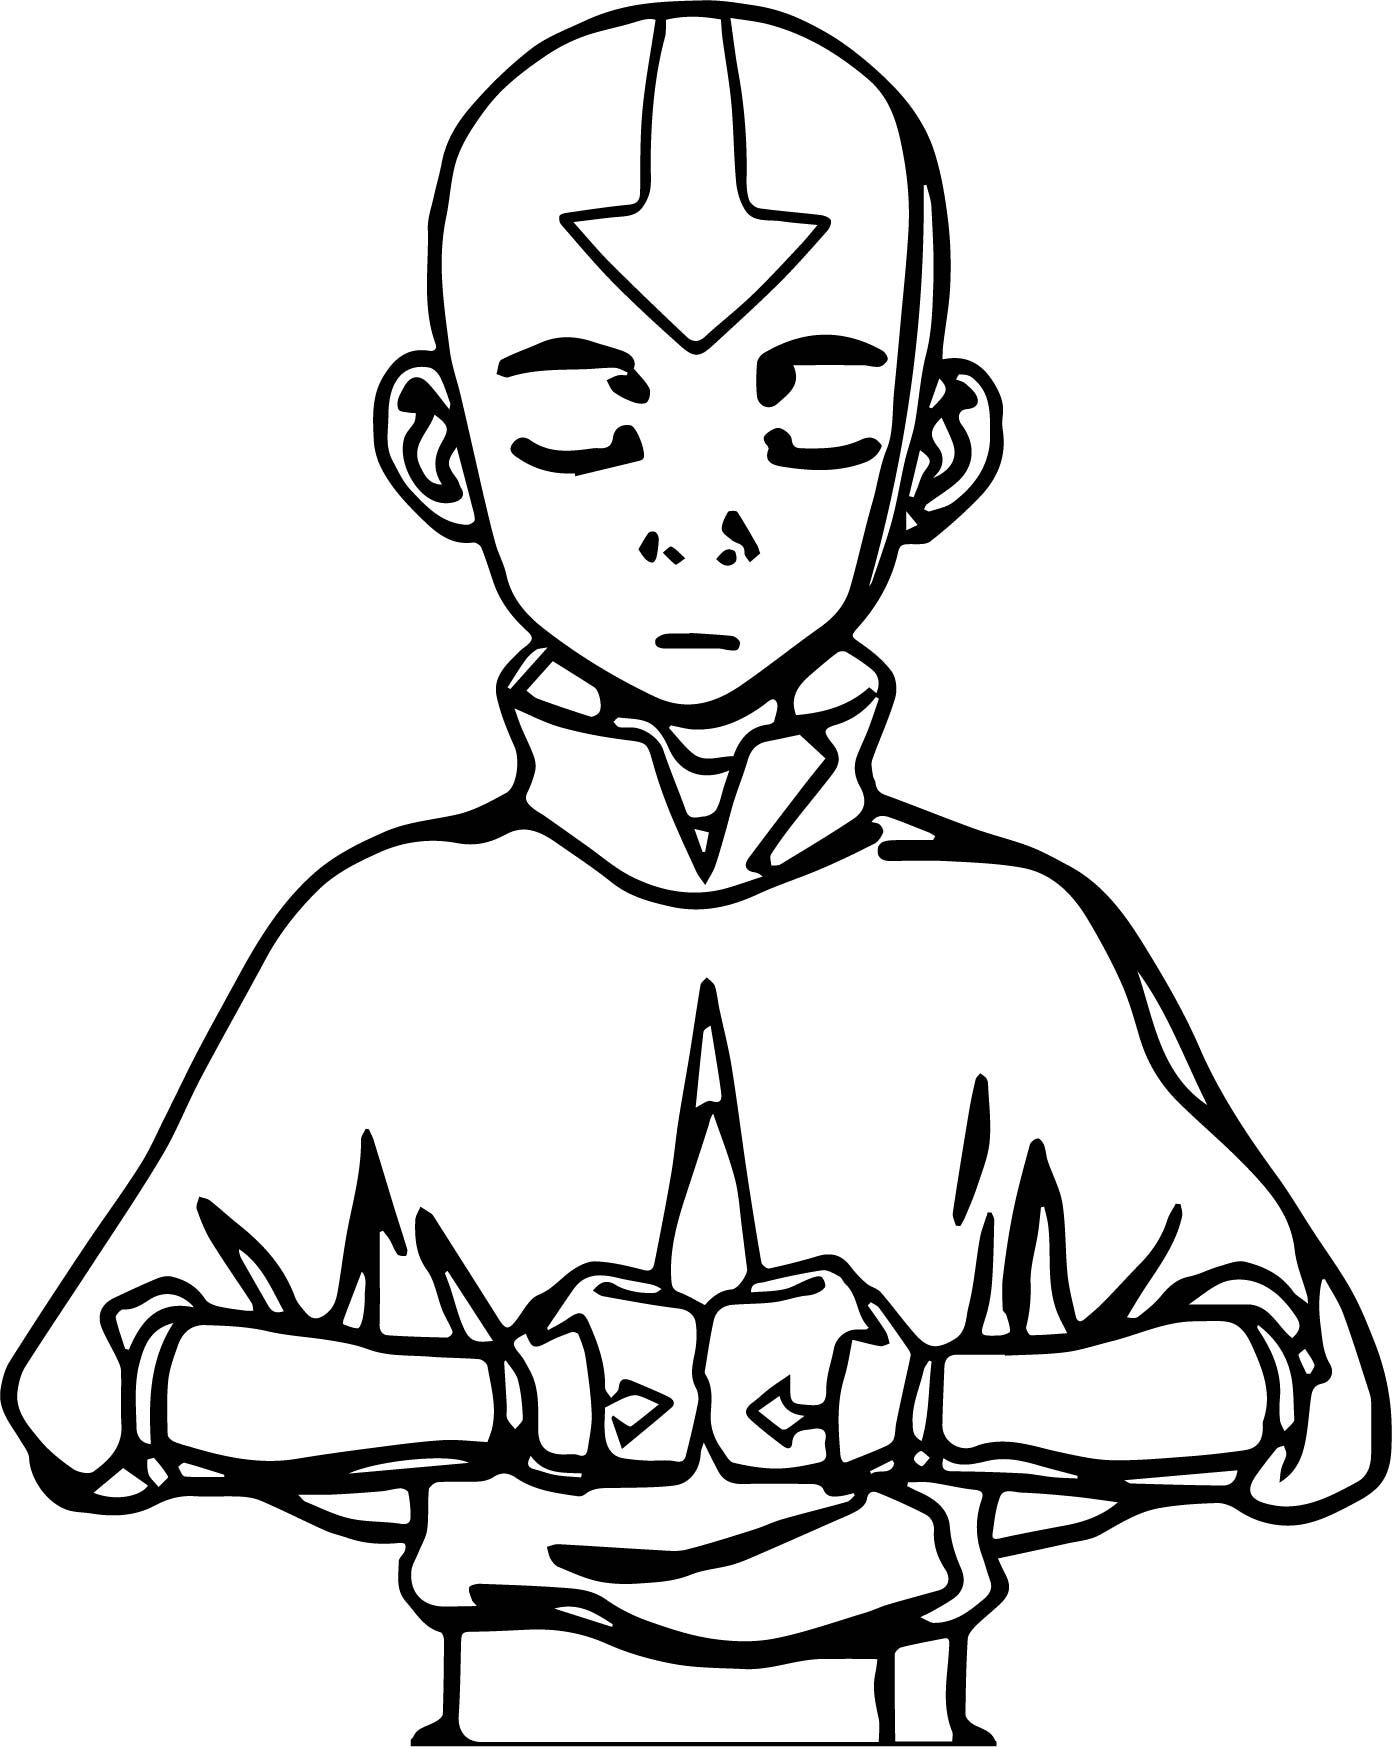 Awesome Aang Meditates Avatar Aang Coloring Page Avatar Tattoo Avatar The Last Airbender Art Avatar Zuko